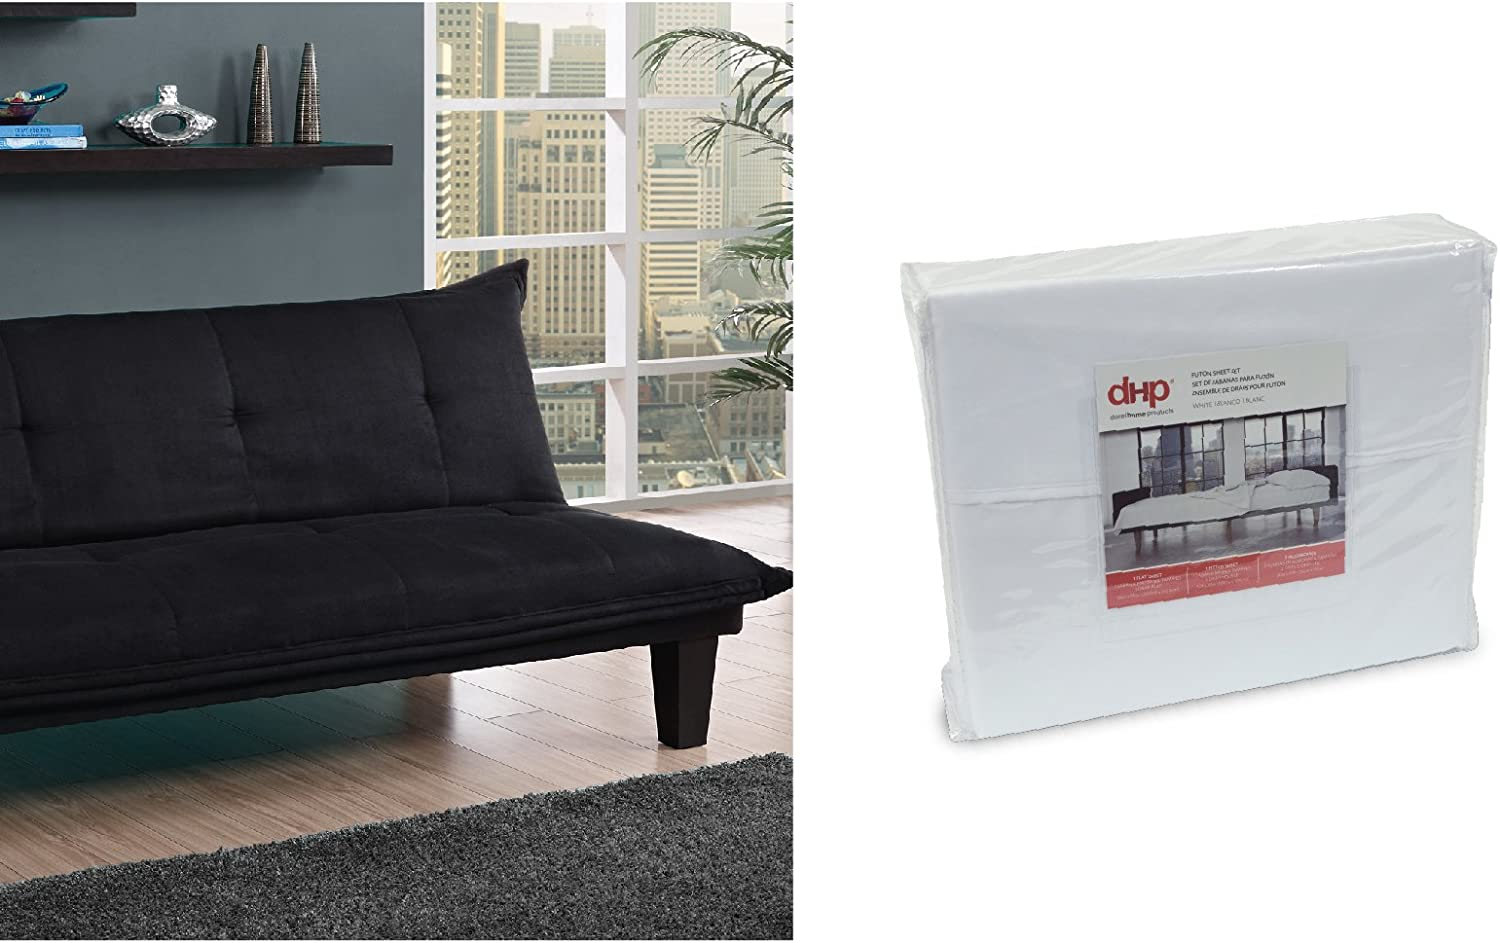 DHP Lodge Convertible Futon Couch Bed, Black and Futon Sheet Set, White